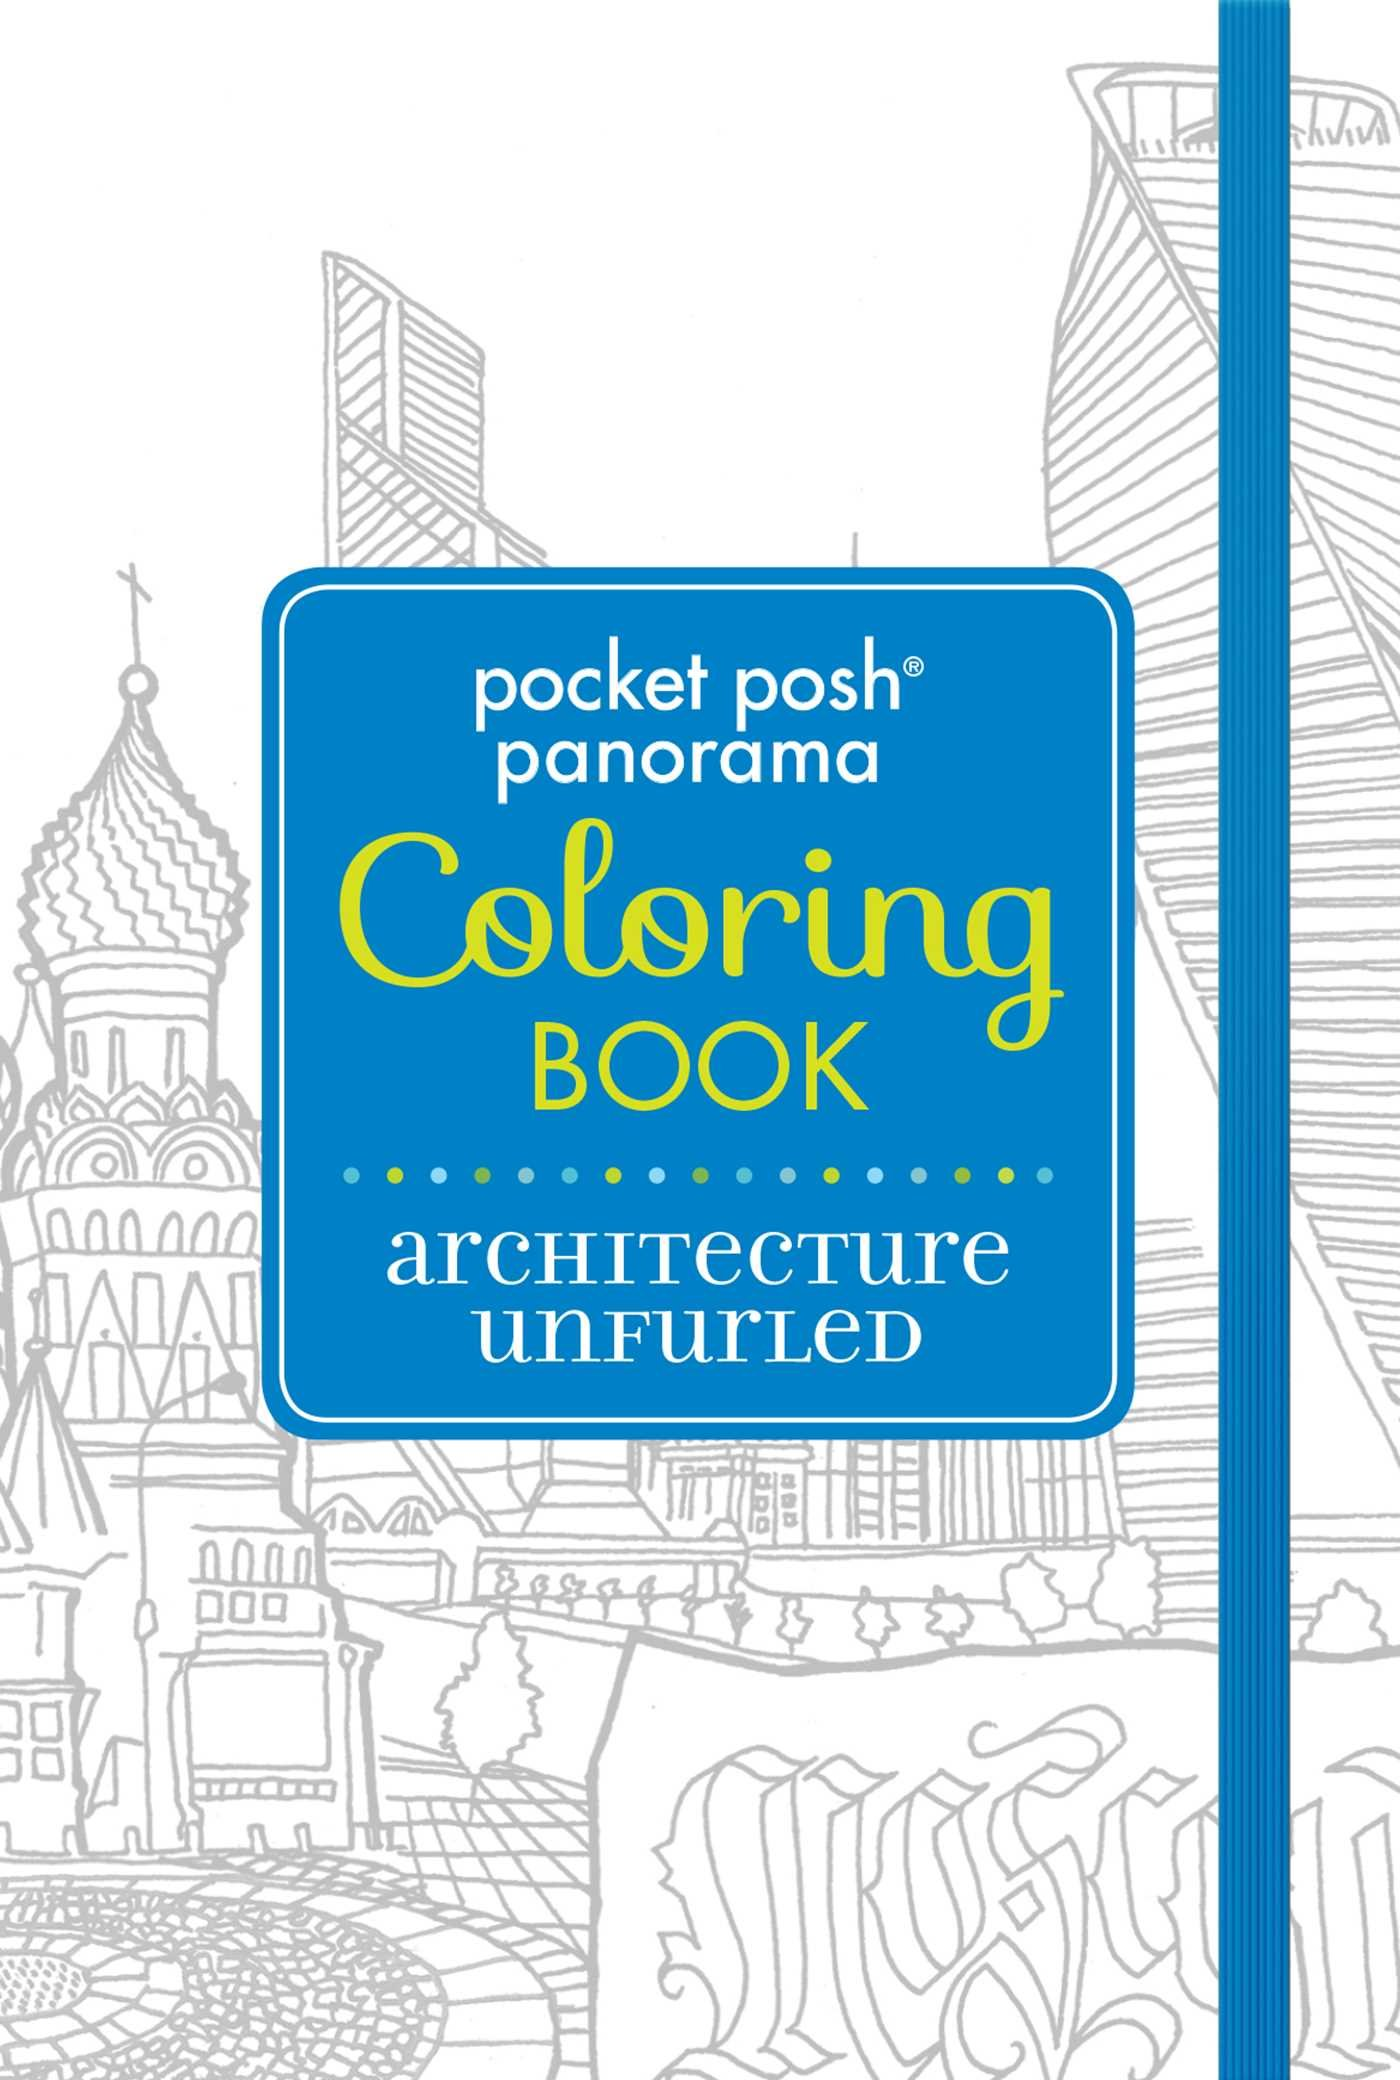 Pocket Posh Panorama Adult Coloring Book: Architecture Unfurled: An Adult Coloring Book